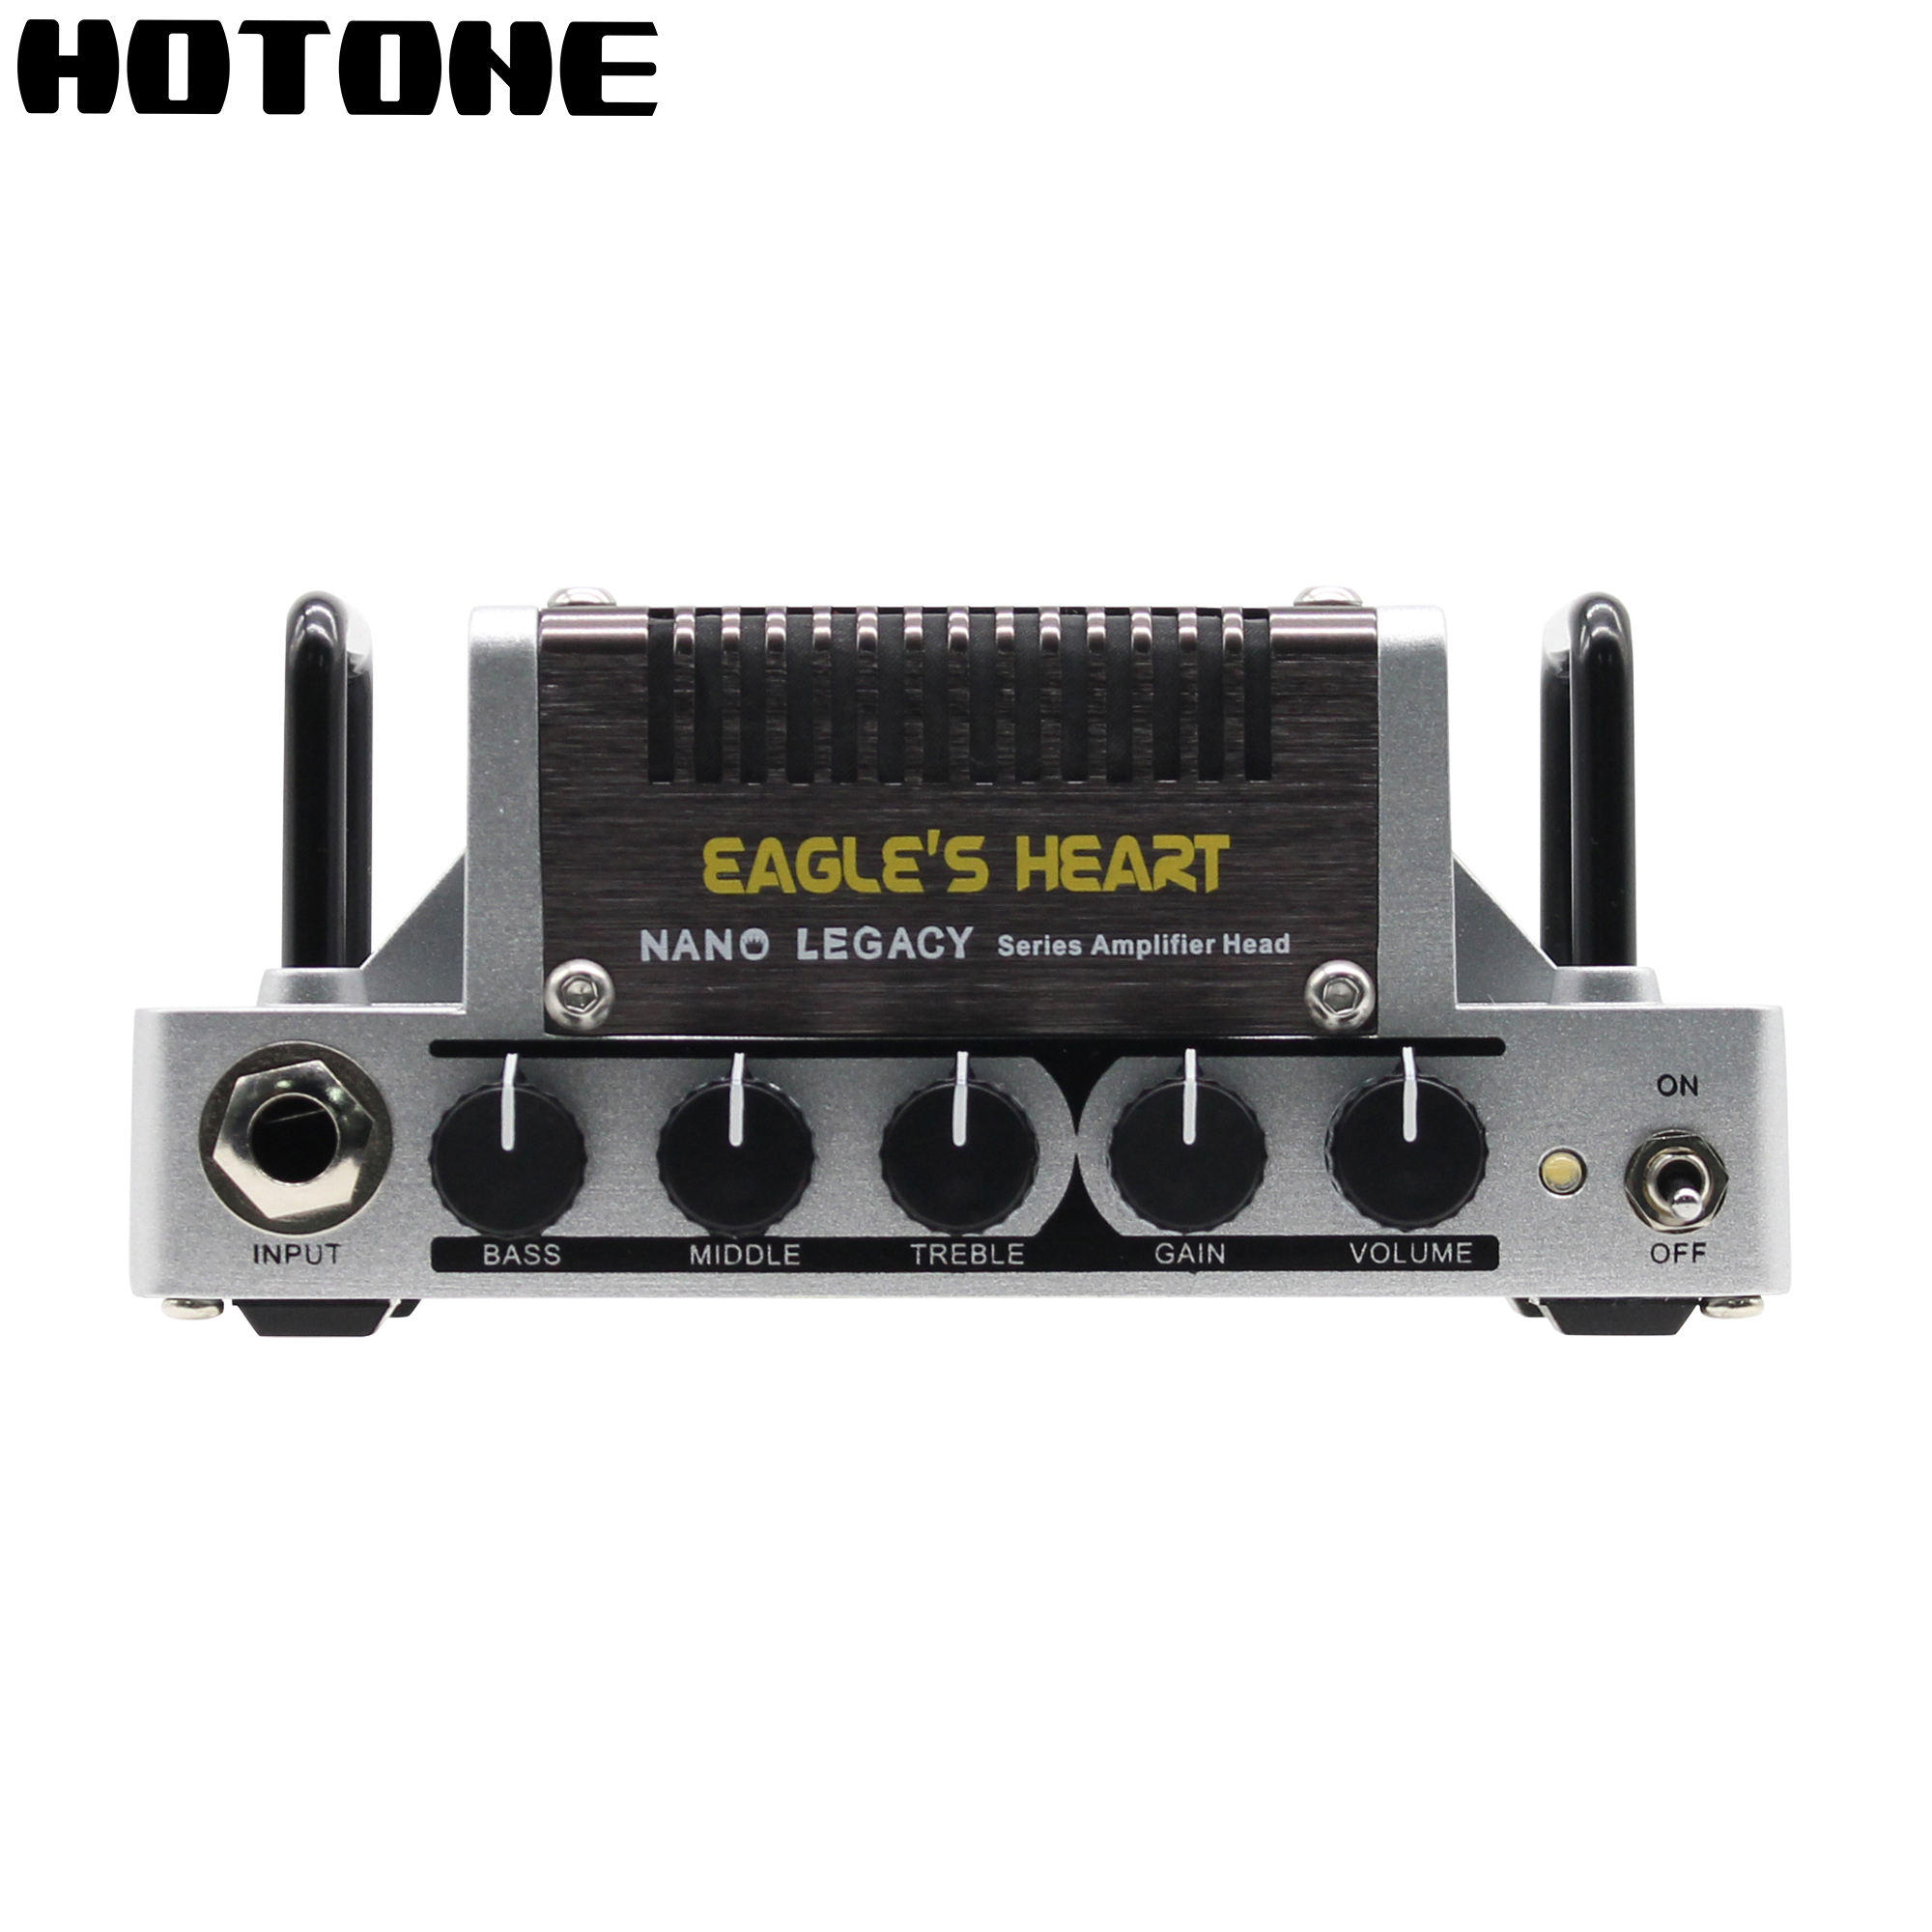 Hotone Eagle's Heart Amplifier Head Nano Legacy Series Inspired by Famous Savage120 AMP 5 Watts Output 3 Band EQ стулья для салона led by heart 2015